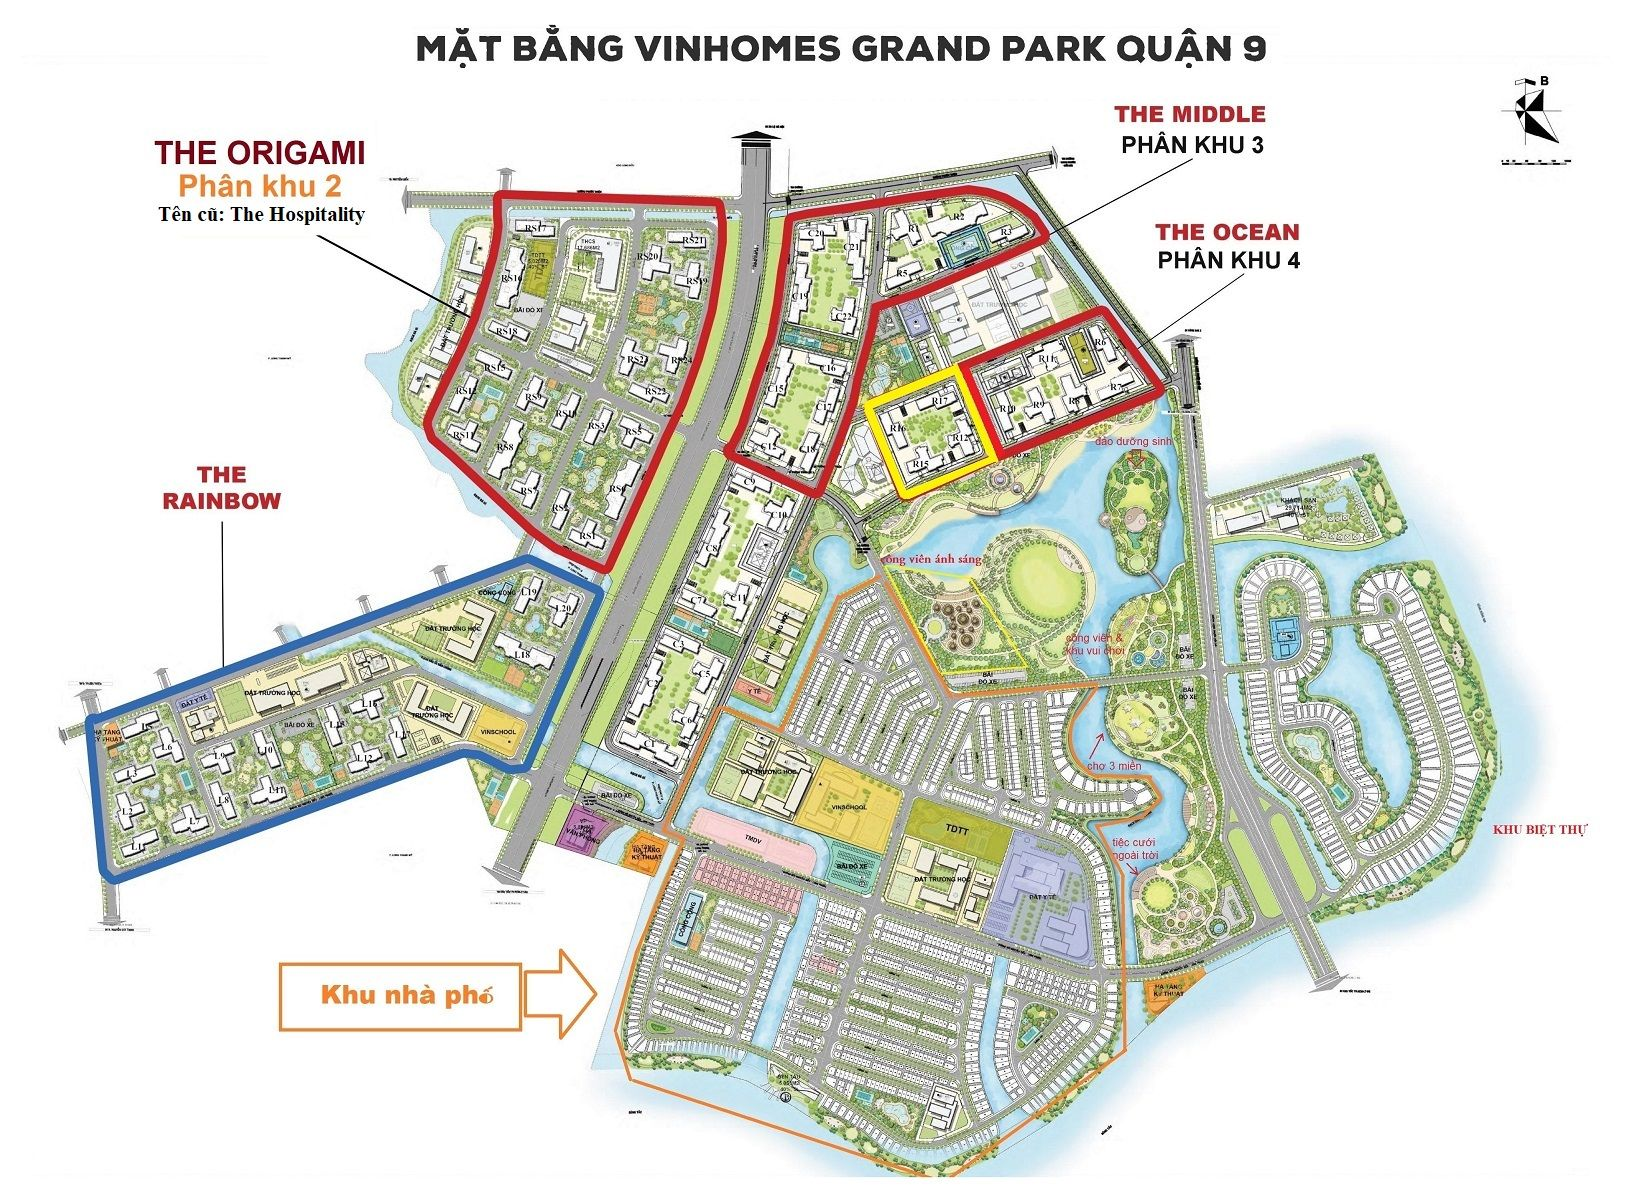 Mat-bang-vinhomes-grand-park-web1